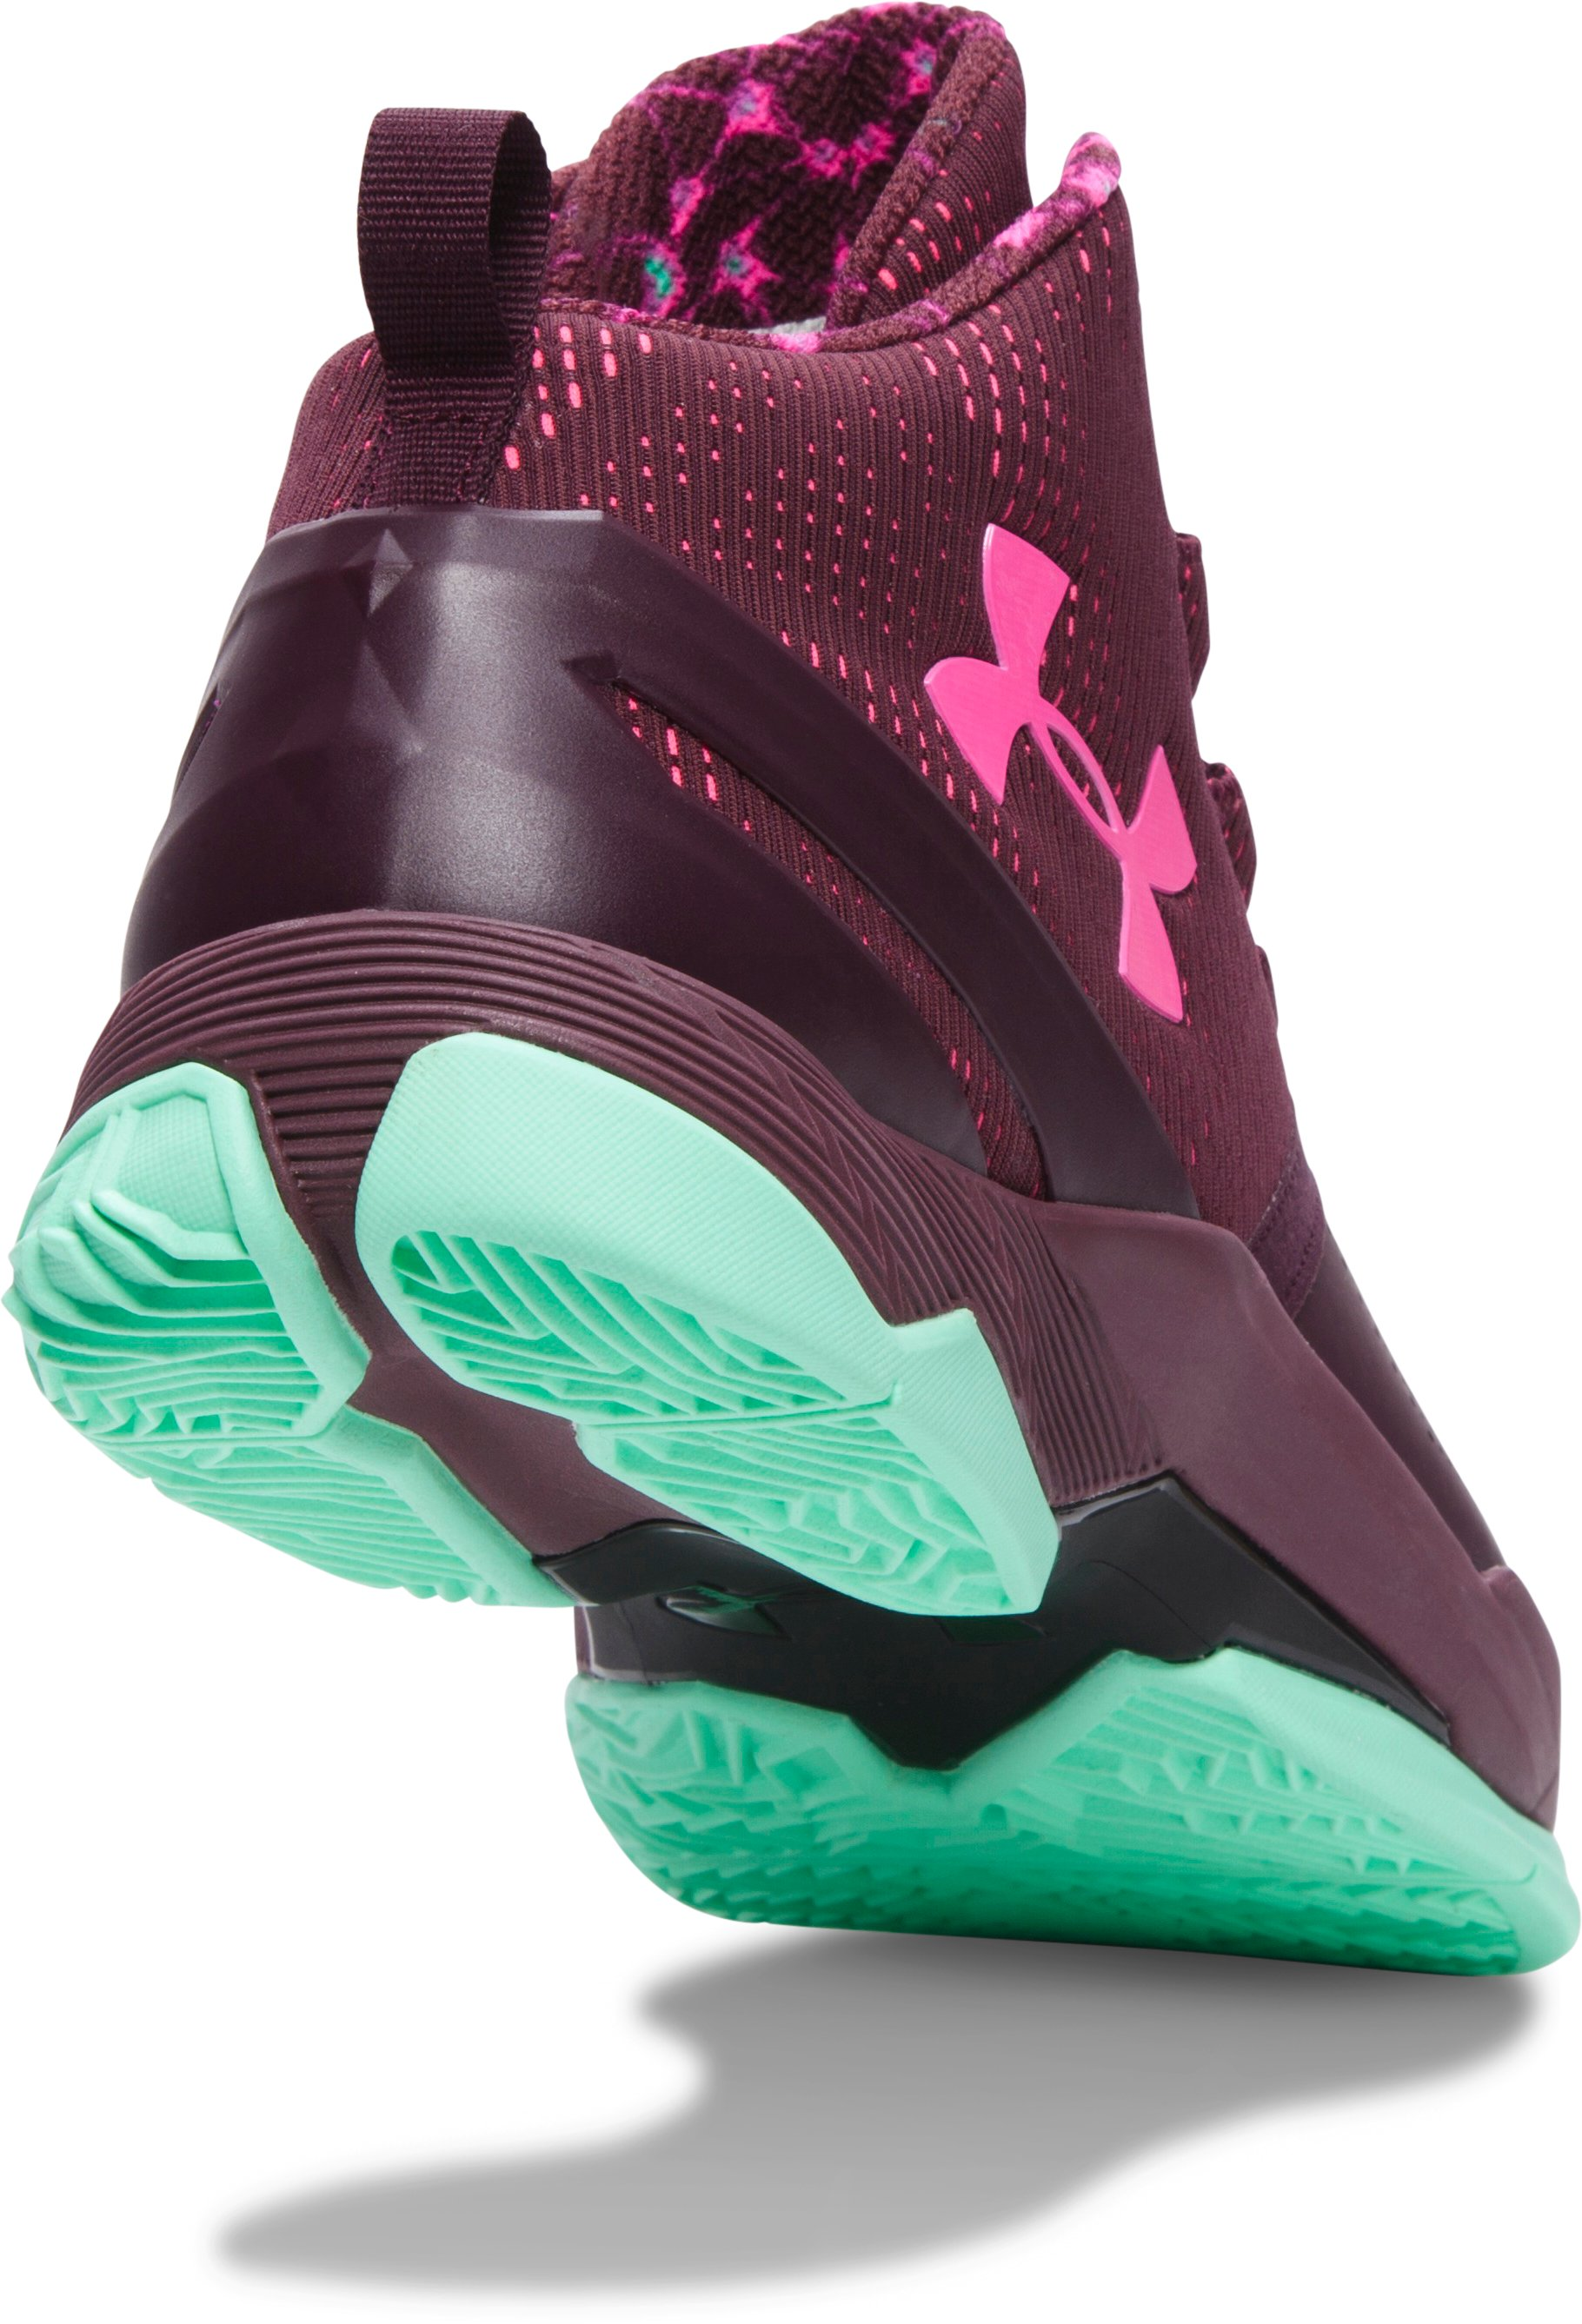 Boys' Grade School UA Curry Two Basketball Shoes, DARK MAROON, undefined